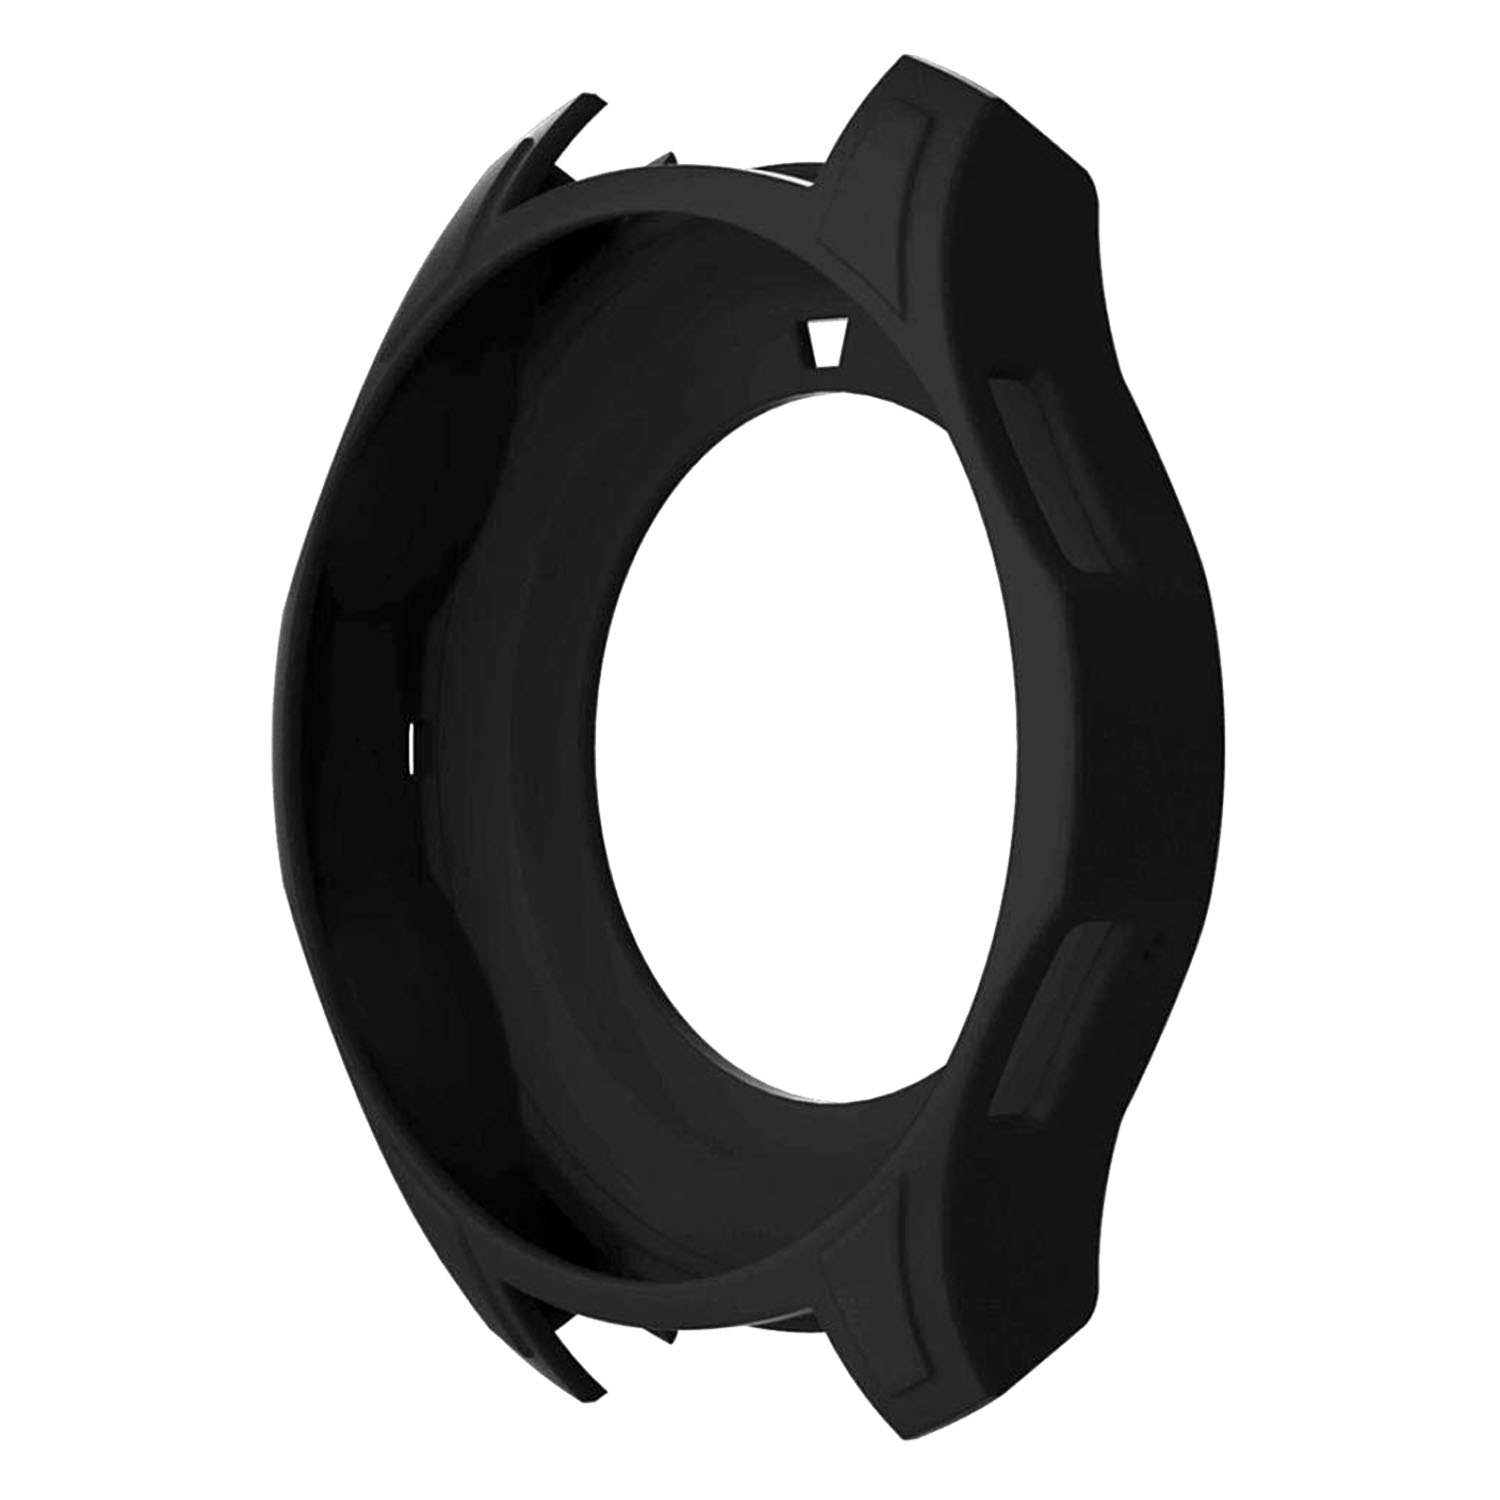 StrapsCo Silicone Rubber Protective Case Cover for Samsung Gear S3 - image 3 of 4